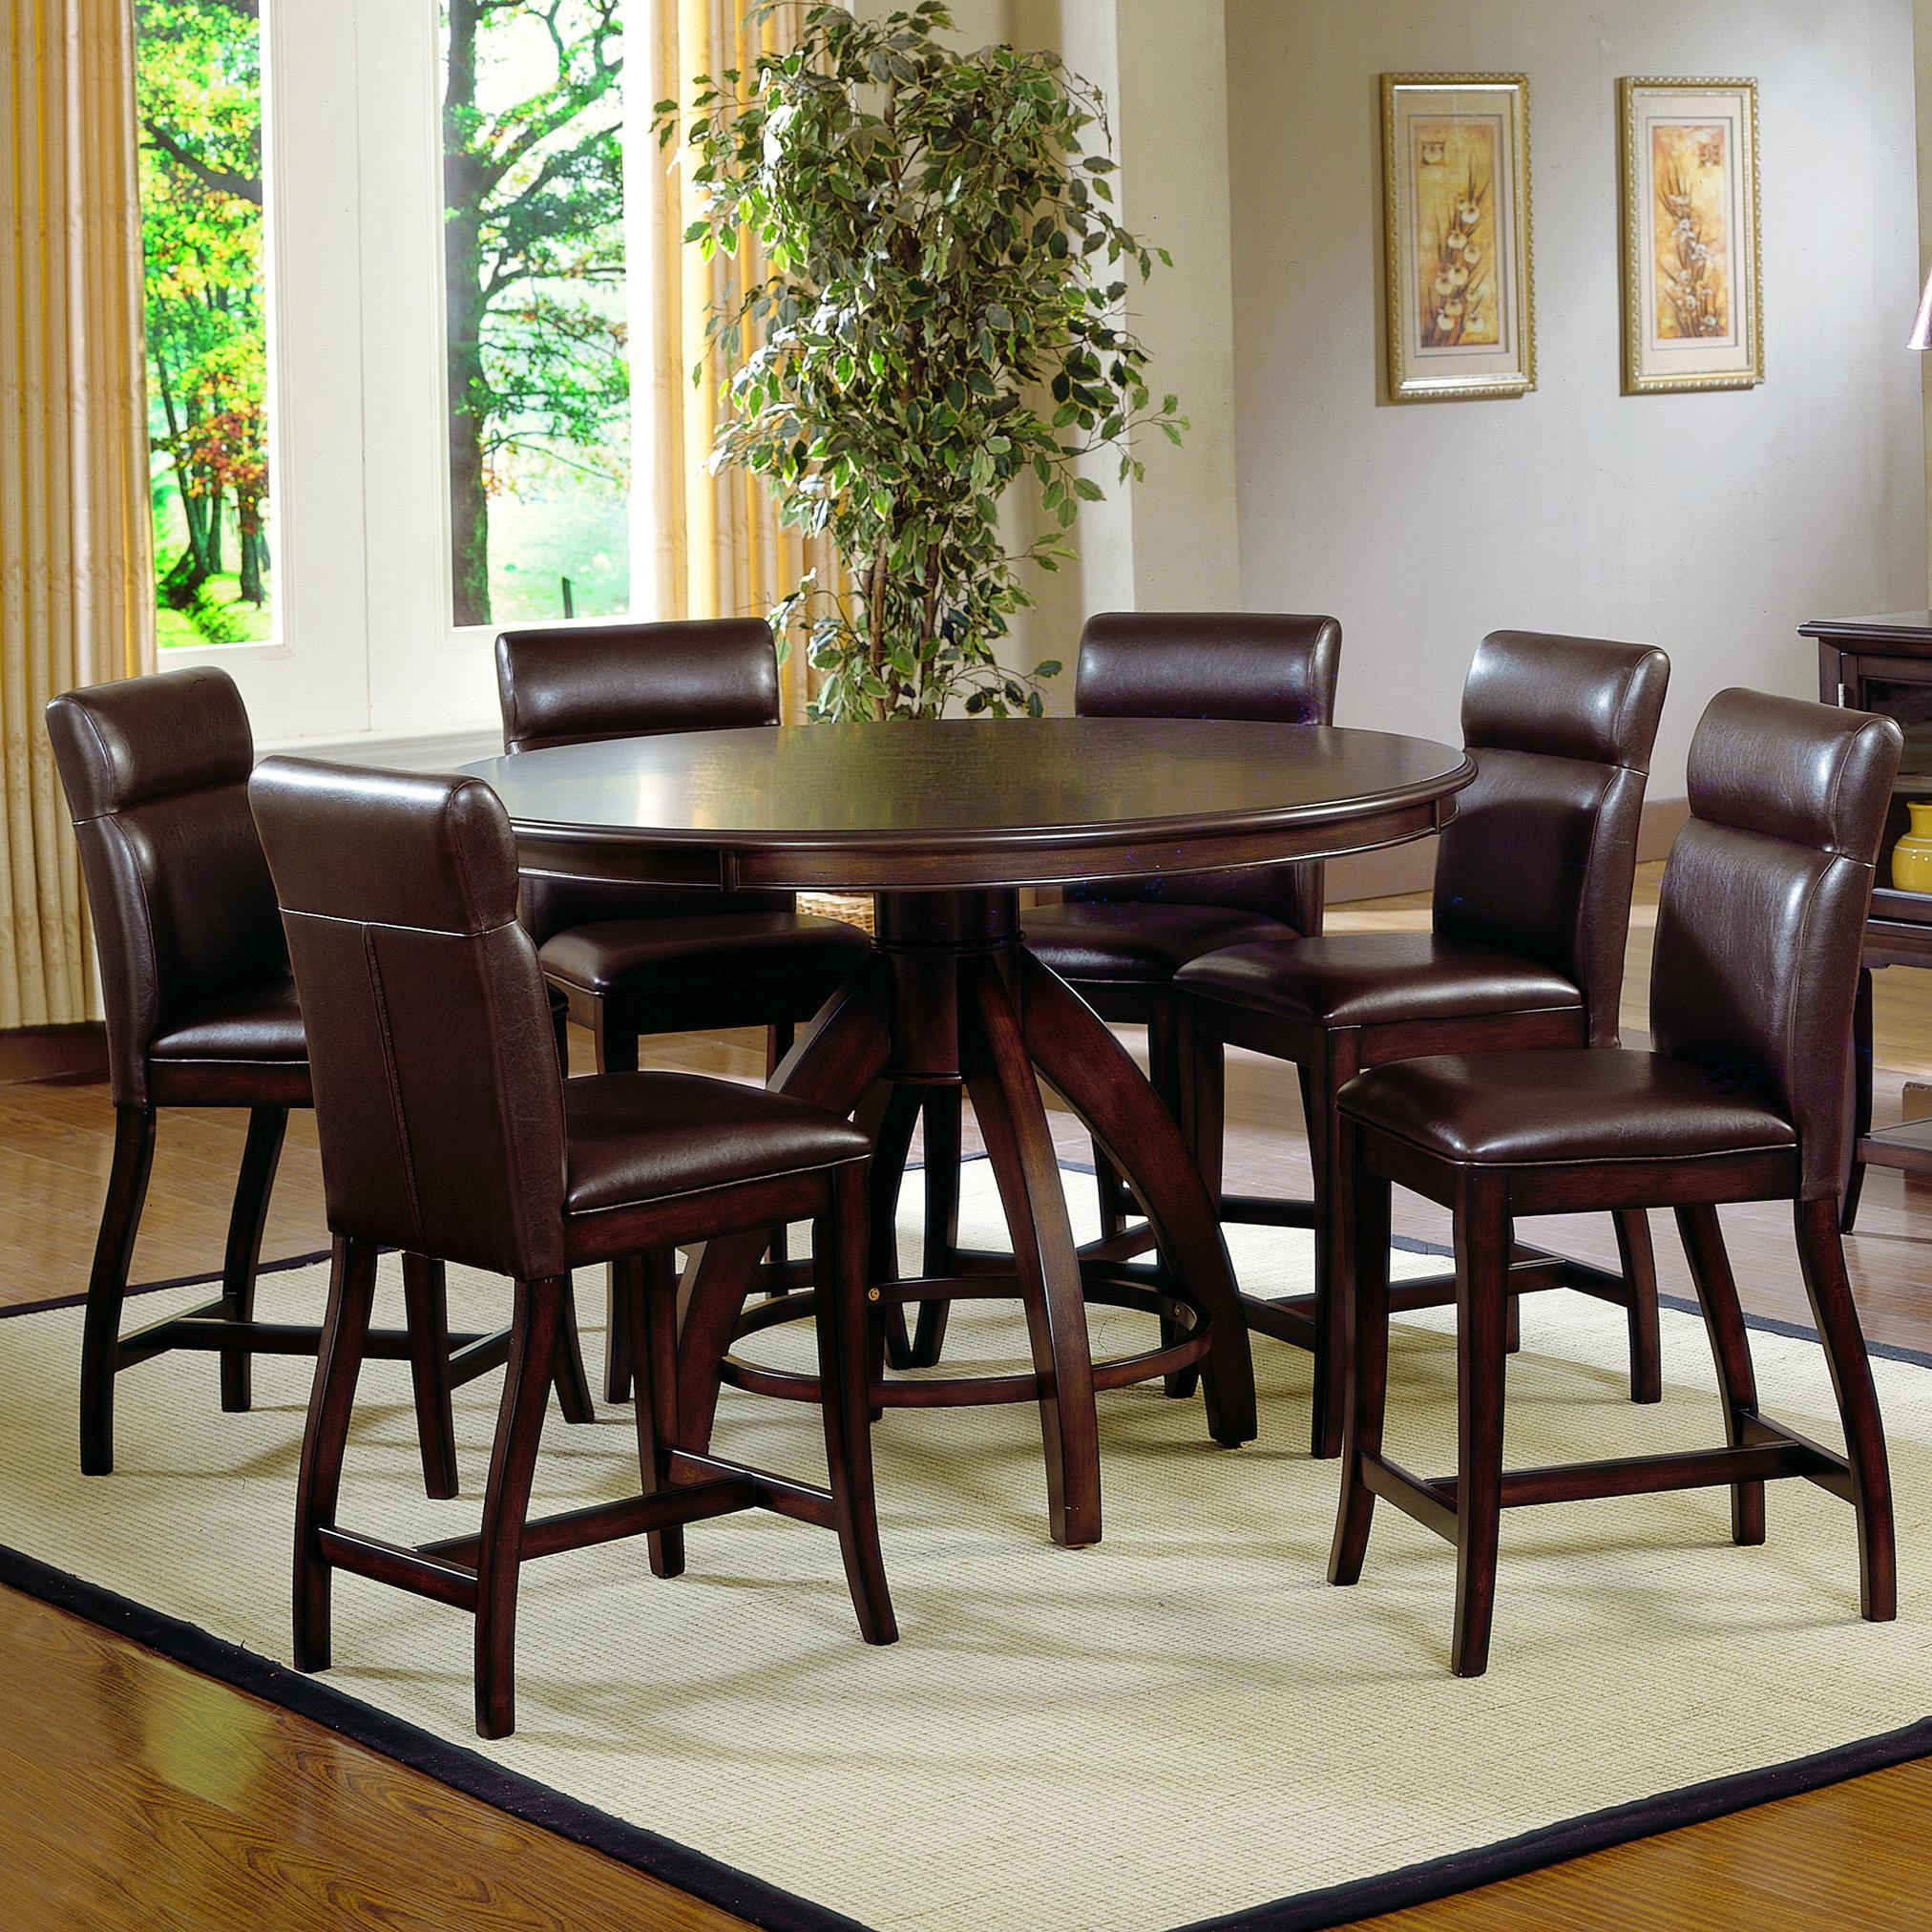 Hillsdale Nottingham 7 Piece Counter Height Dining Set - Item Number: 4077DTBCGS7